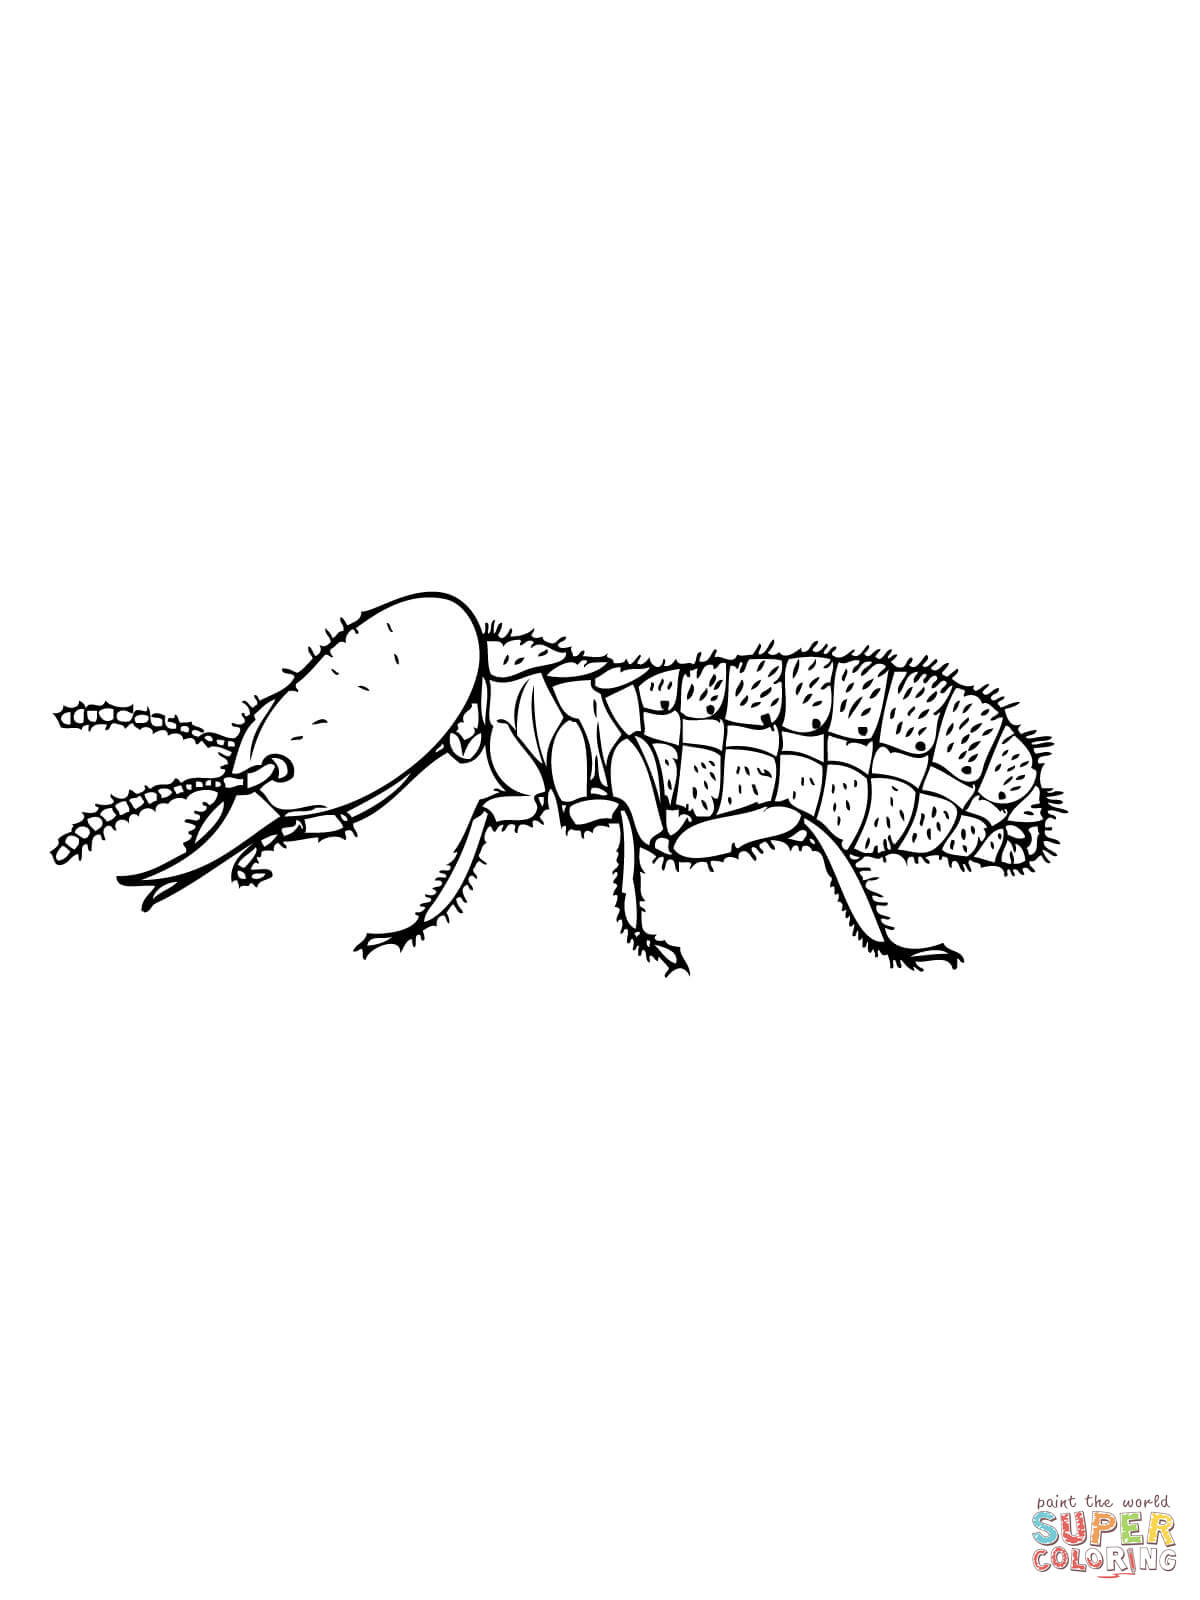 Drywood Termites: Termite Coloring Page